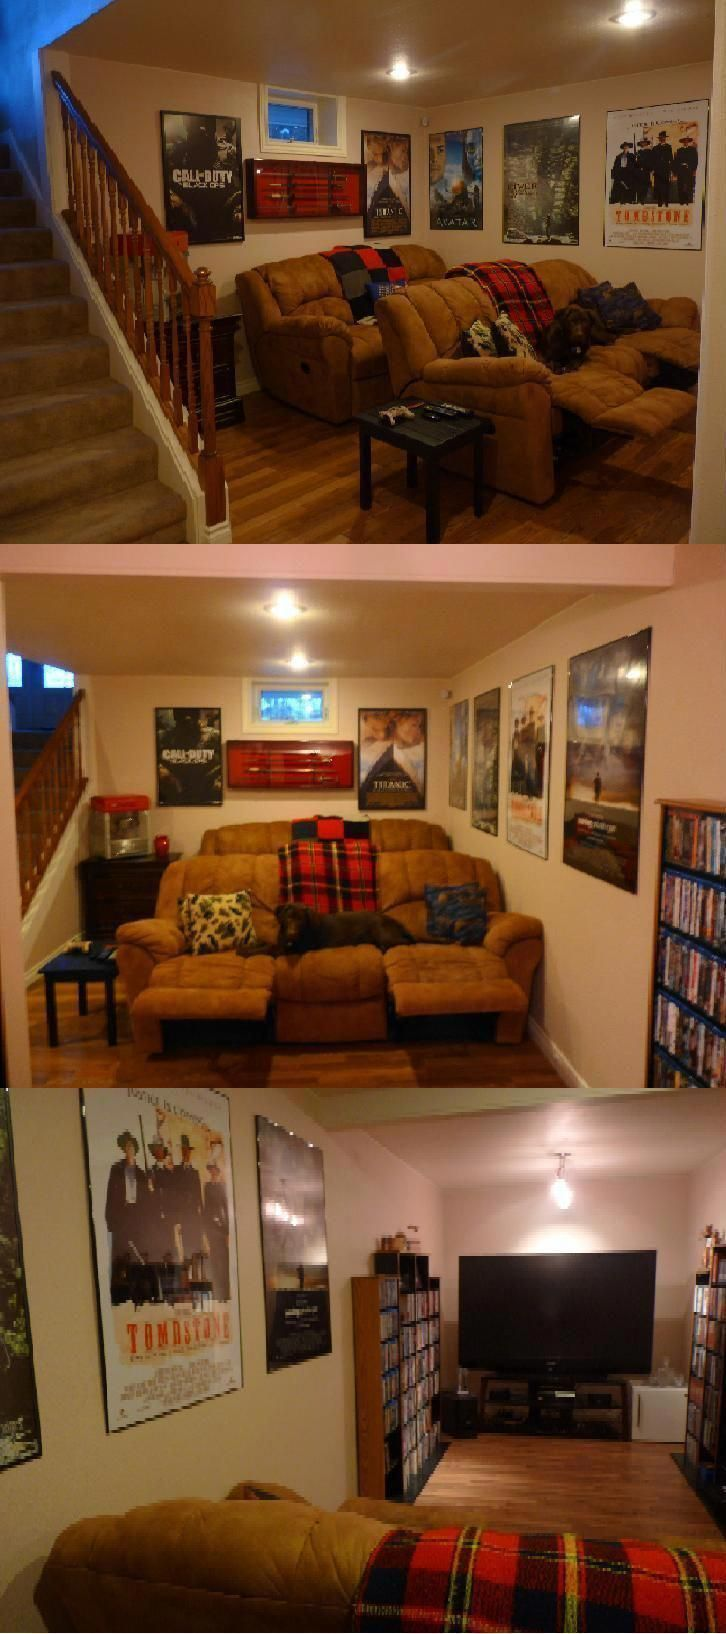 Basement Home Theater Ideas Diy Small Spaces Budget Medium Wiring Inspiration Built Ins Paint Colors Garage Film Reels Projects Wall Art